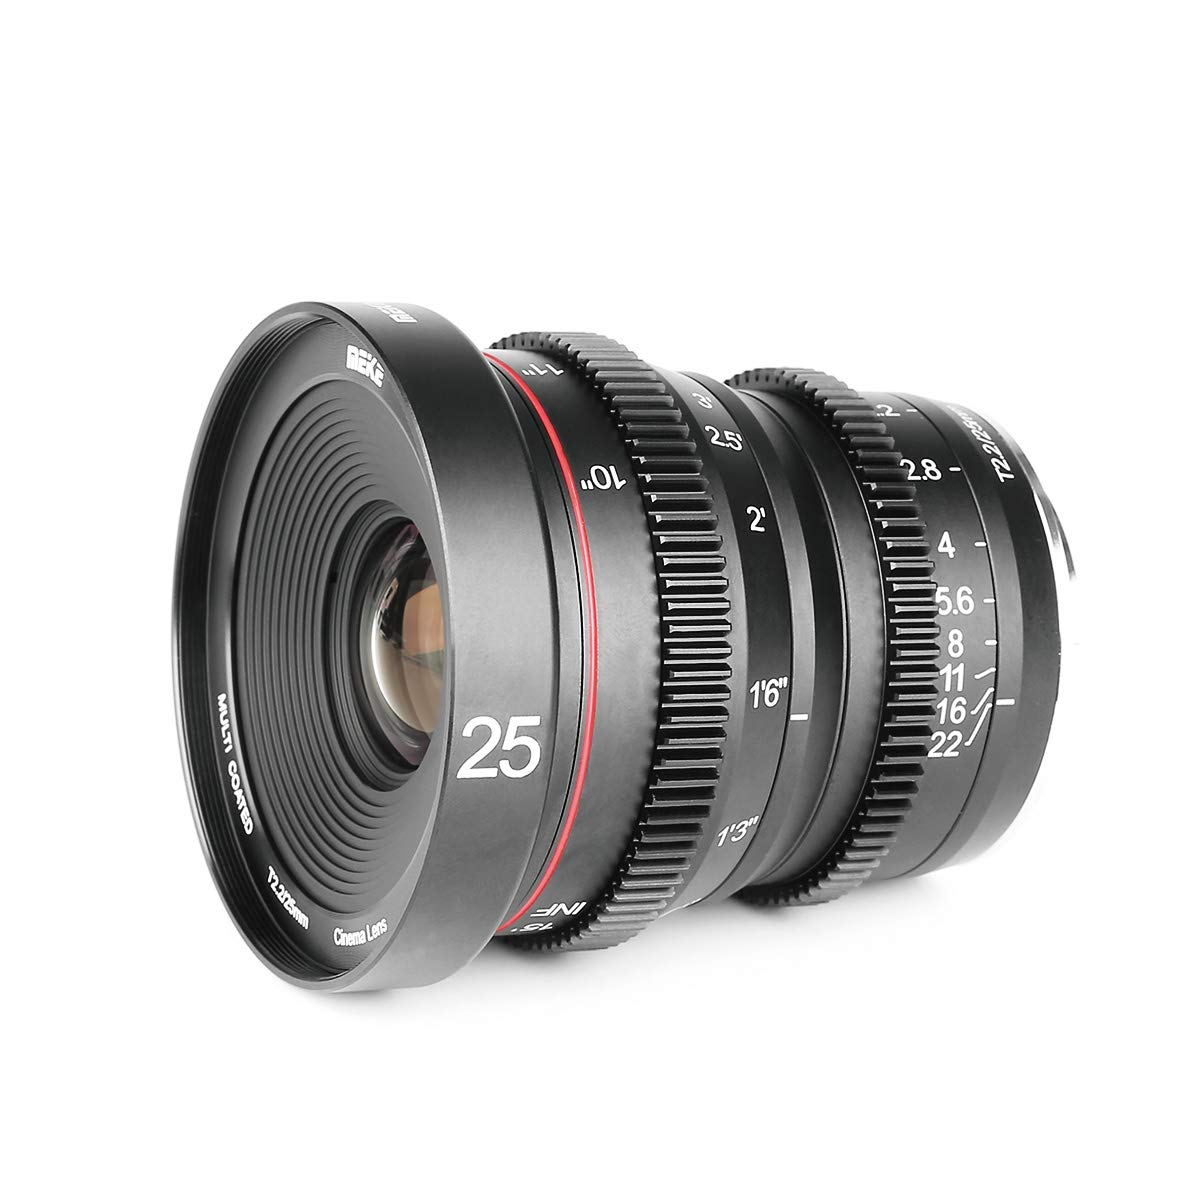 Meike 25mm T2.2 Large Aperture Manual Focus Prime Low Distortion Mini Cine Lens Compatible with Micro Four Thirds M43 MFT Olympus Panasonic Lumix Cameras and BMPCC